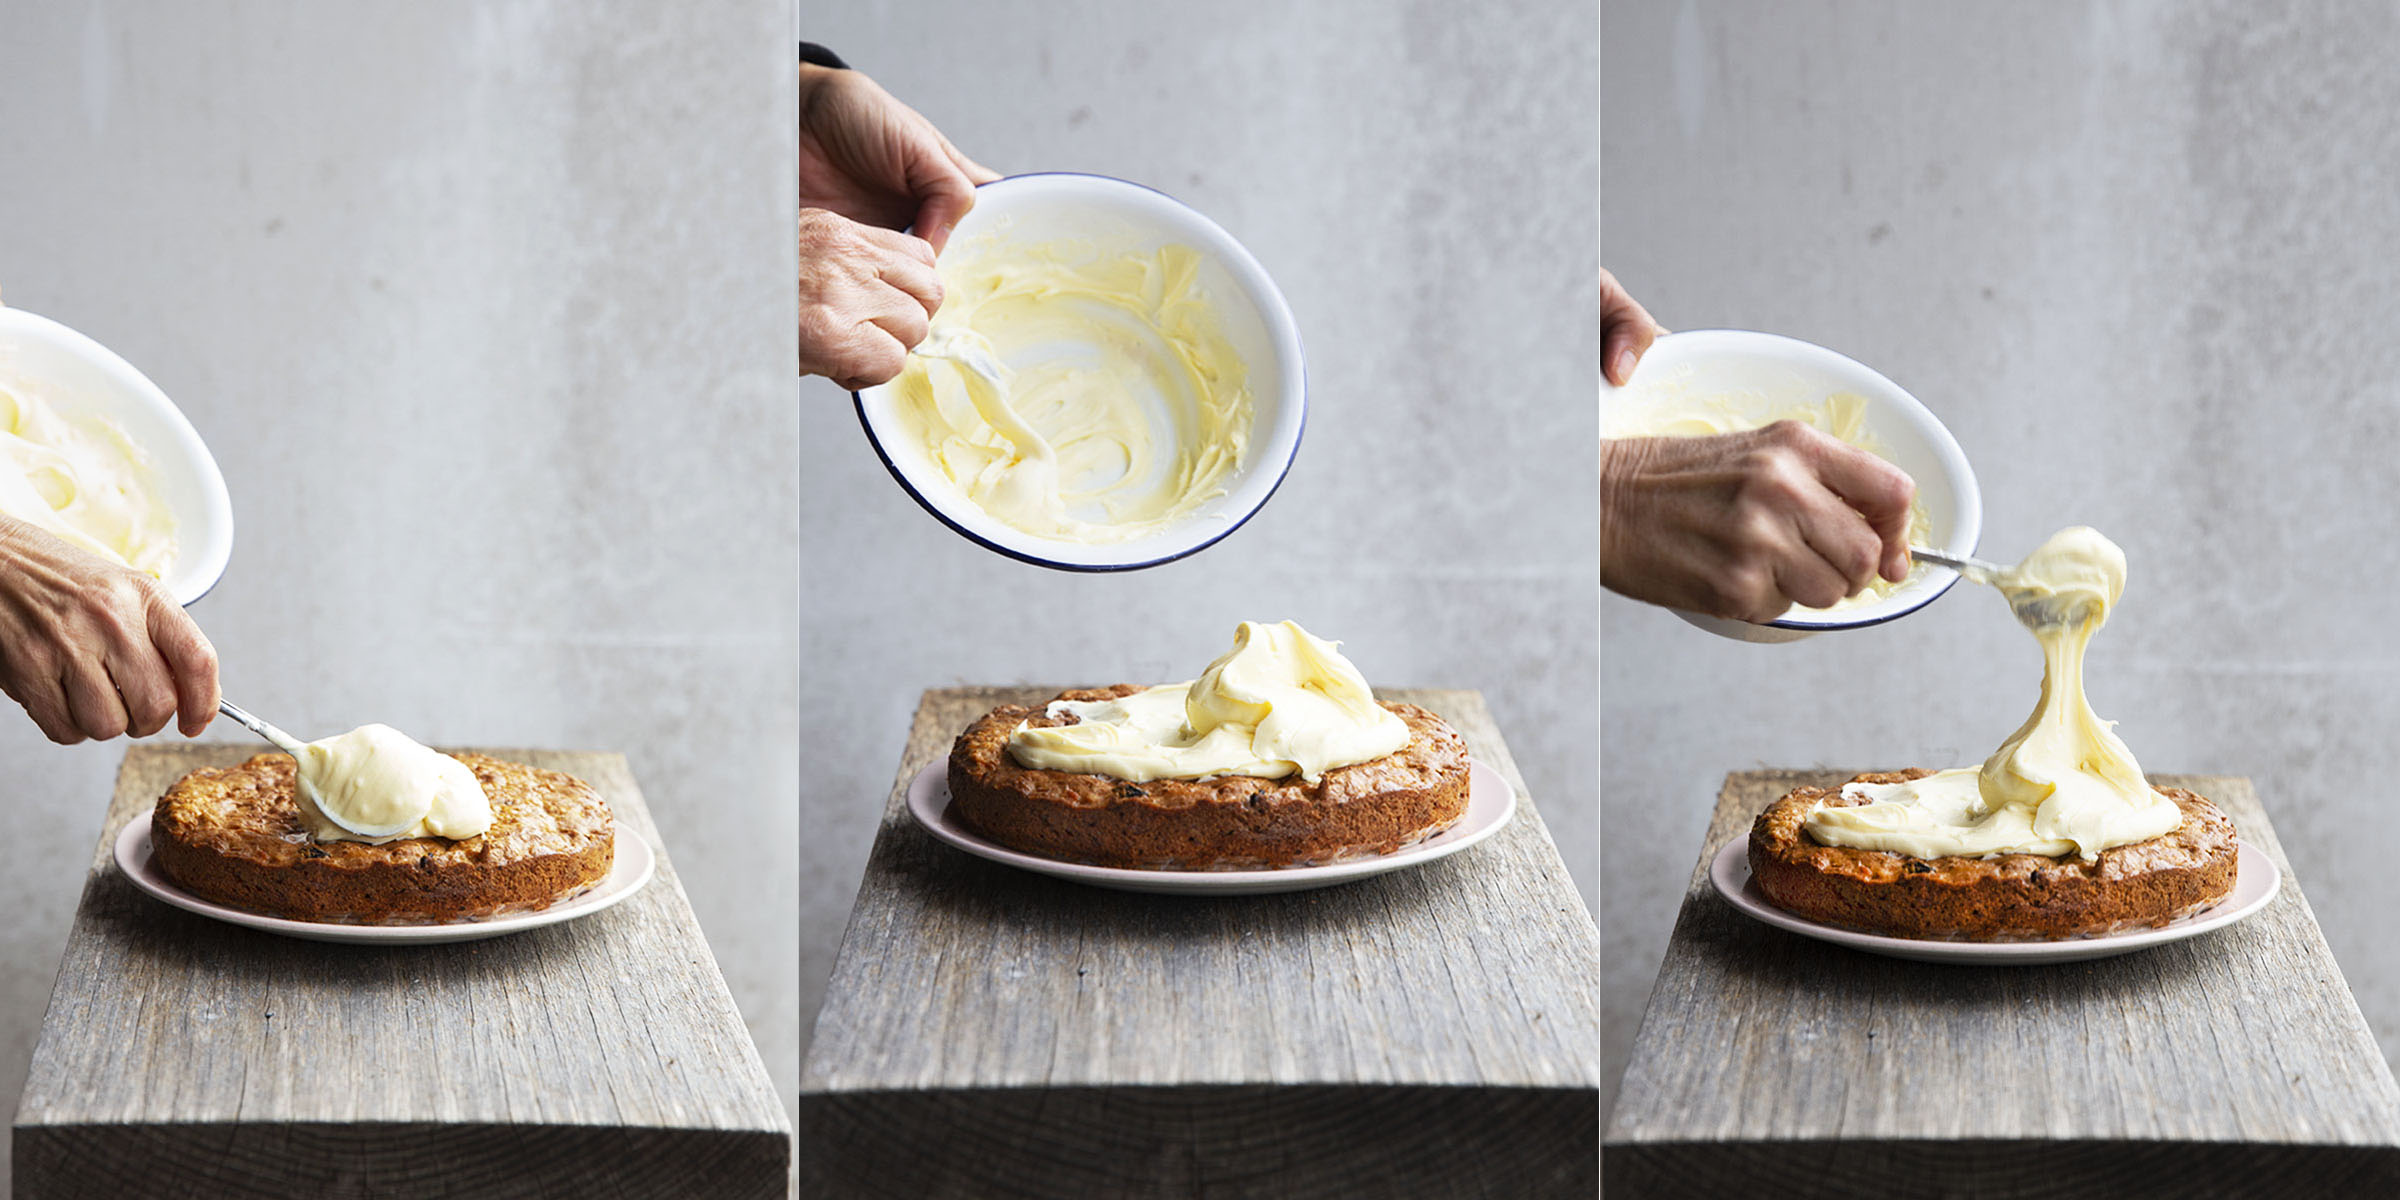 Carrot cake compliation